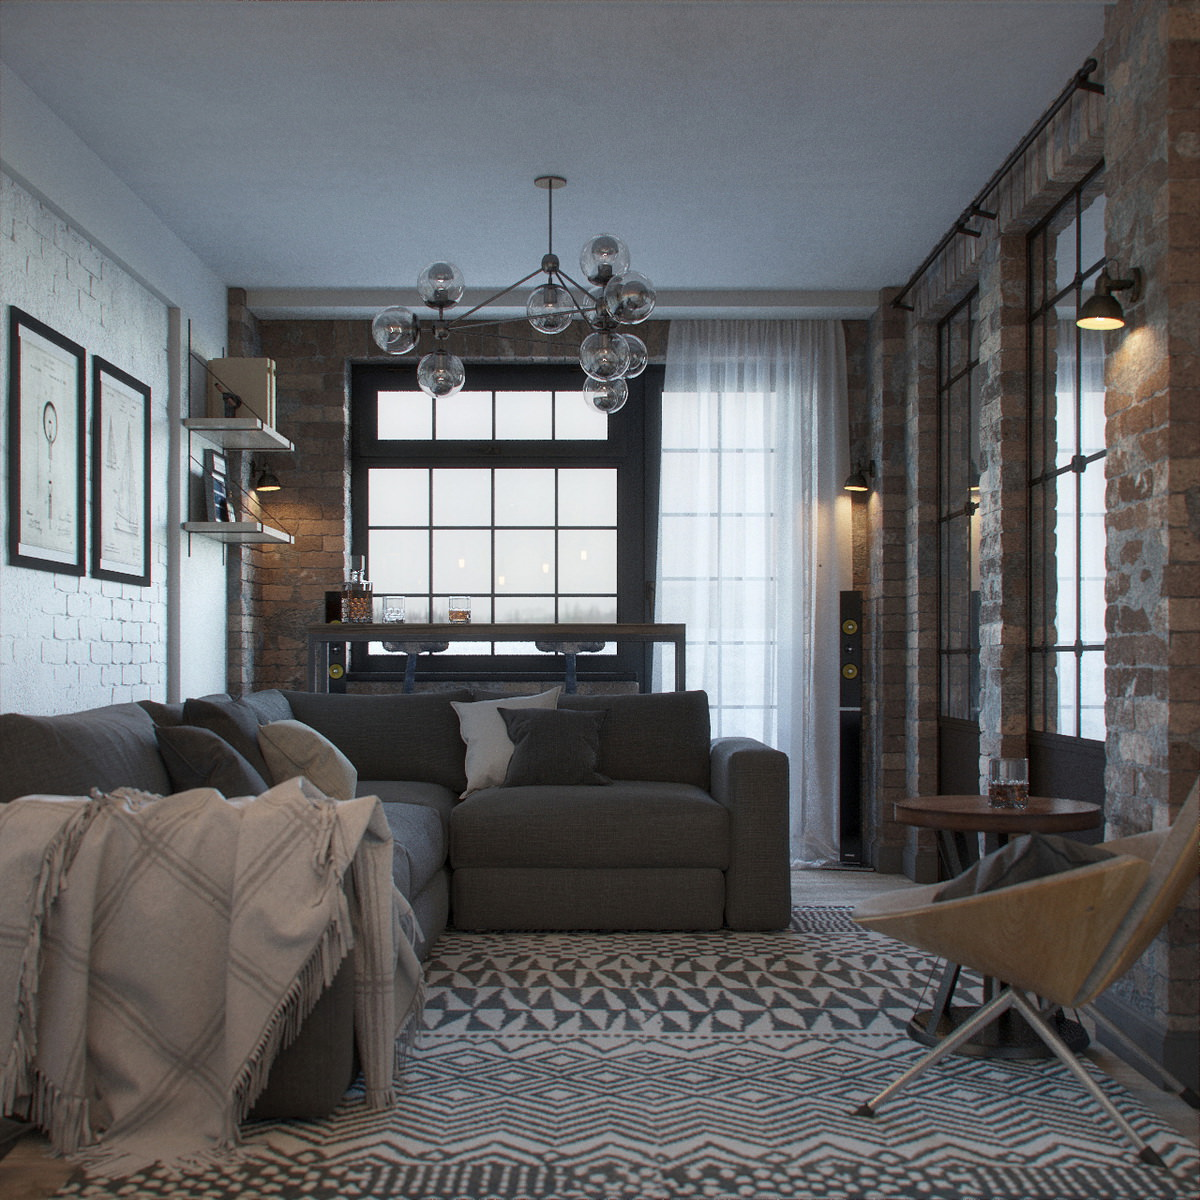 interior-3D-visualization-loft-room-sofa